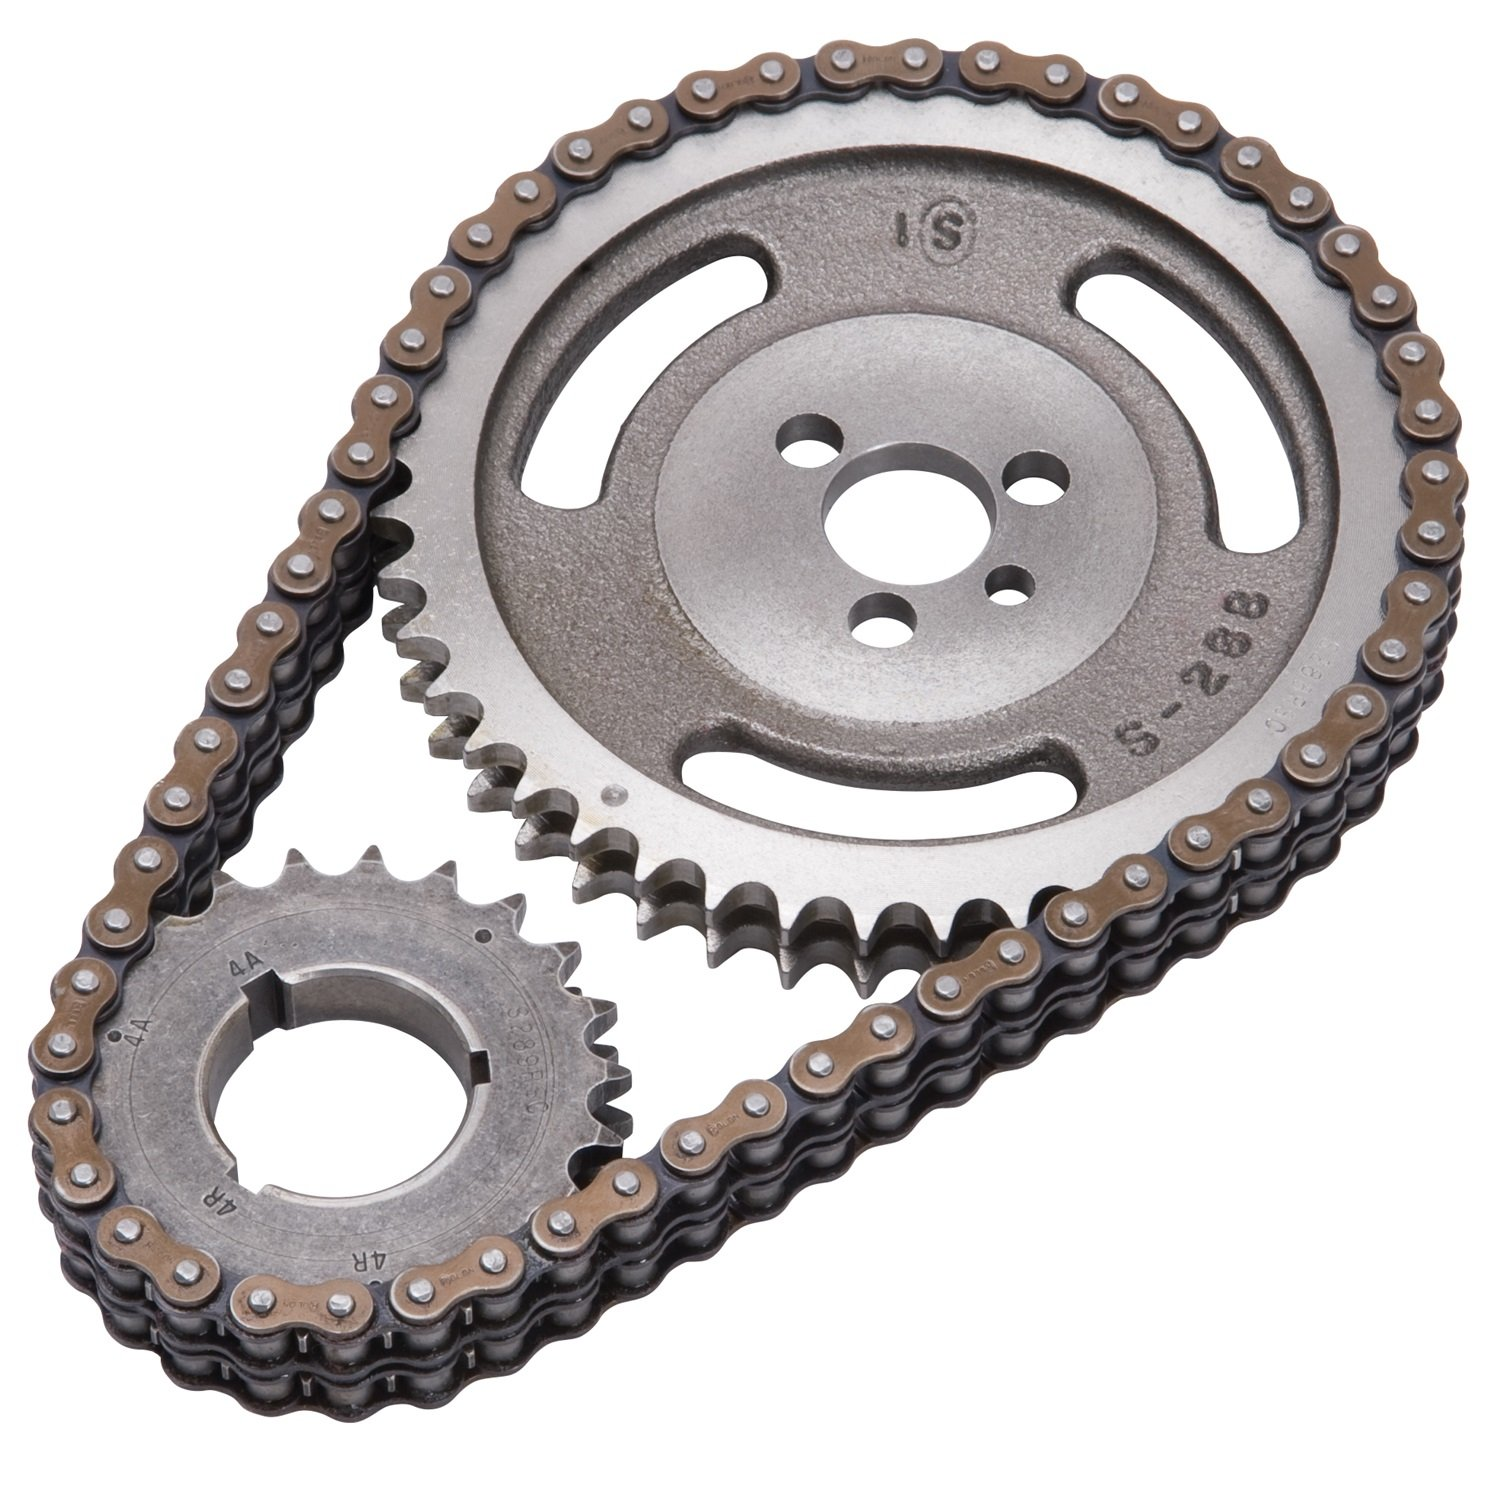 Edelbrock 7800 Timing Chain Set